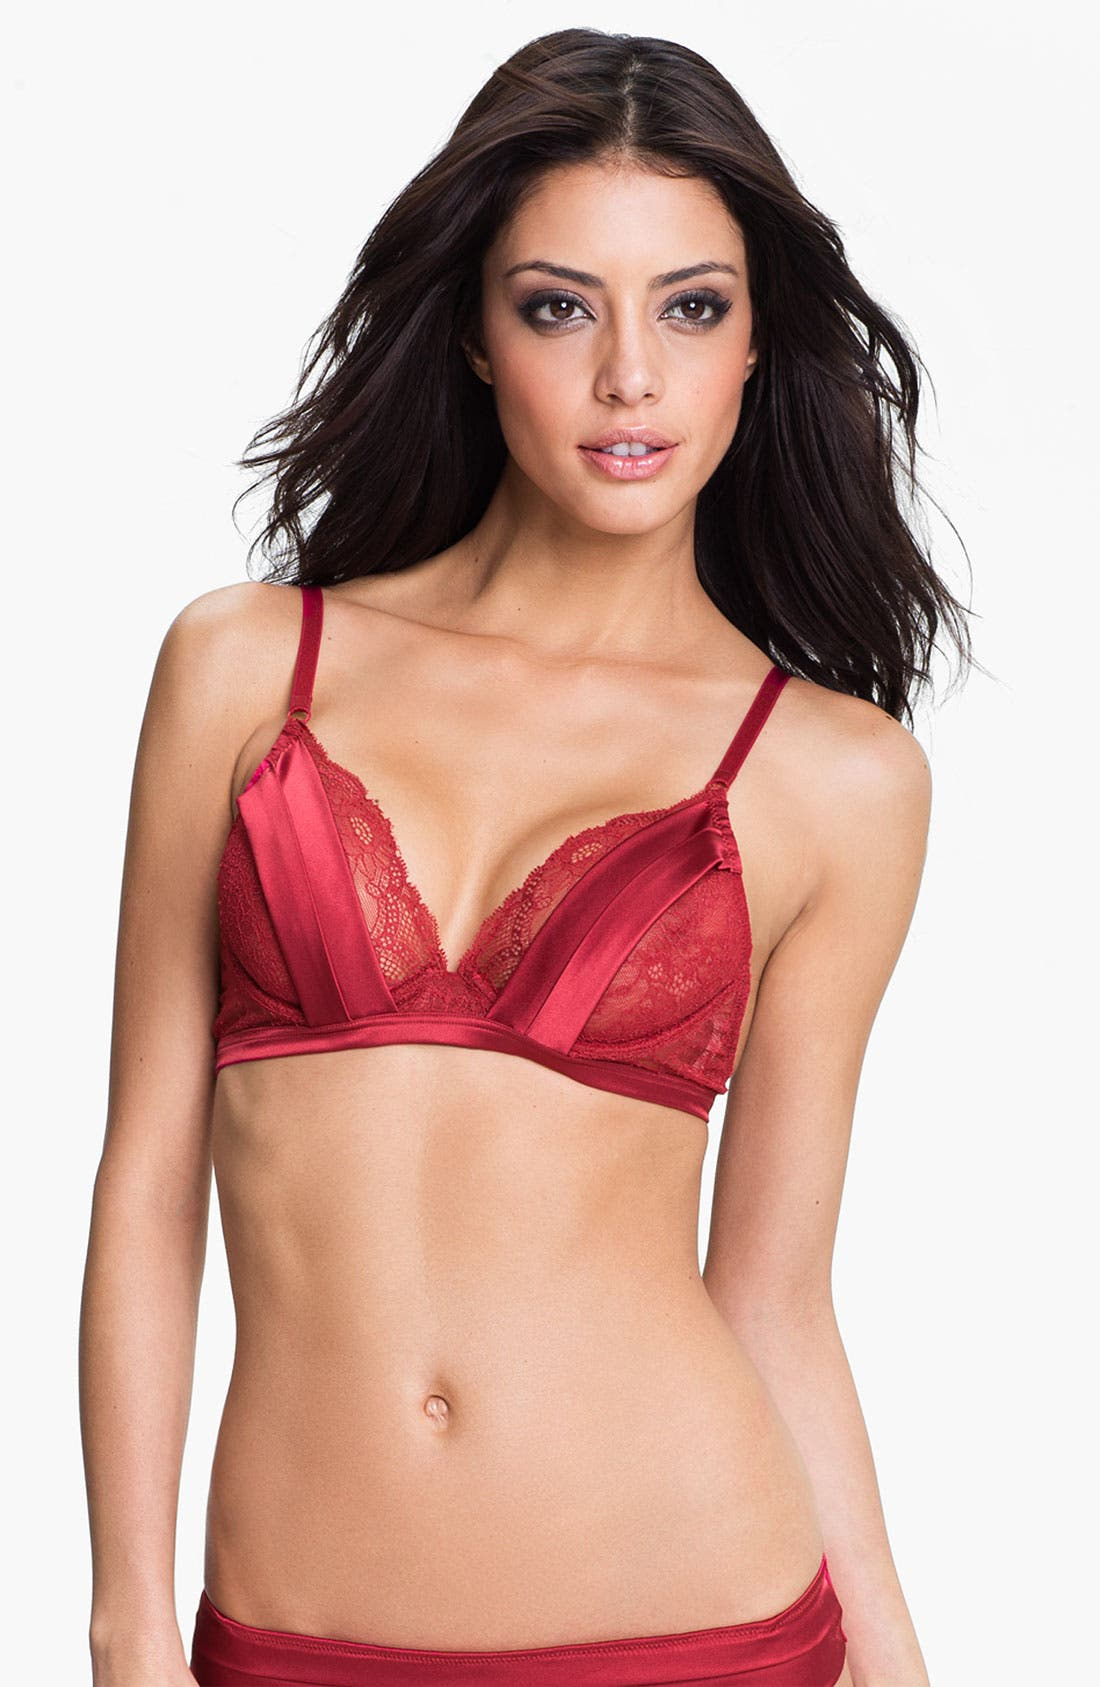 Alternate Image 1 Selected - La Perla 'Lipstick Fever' Underwire Bra